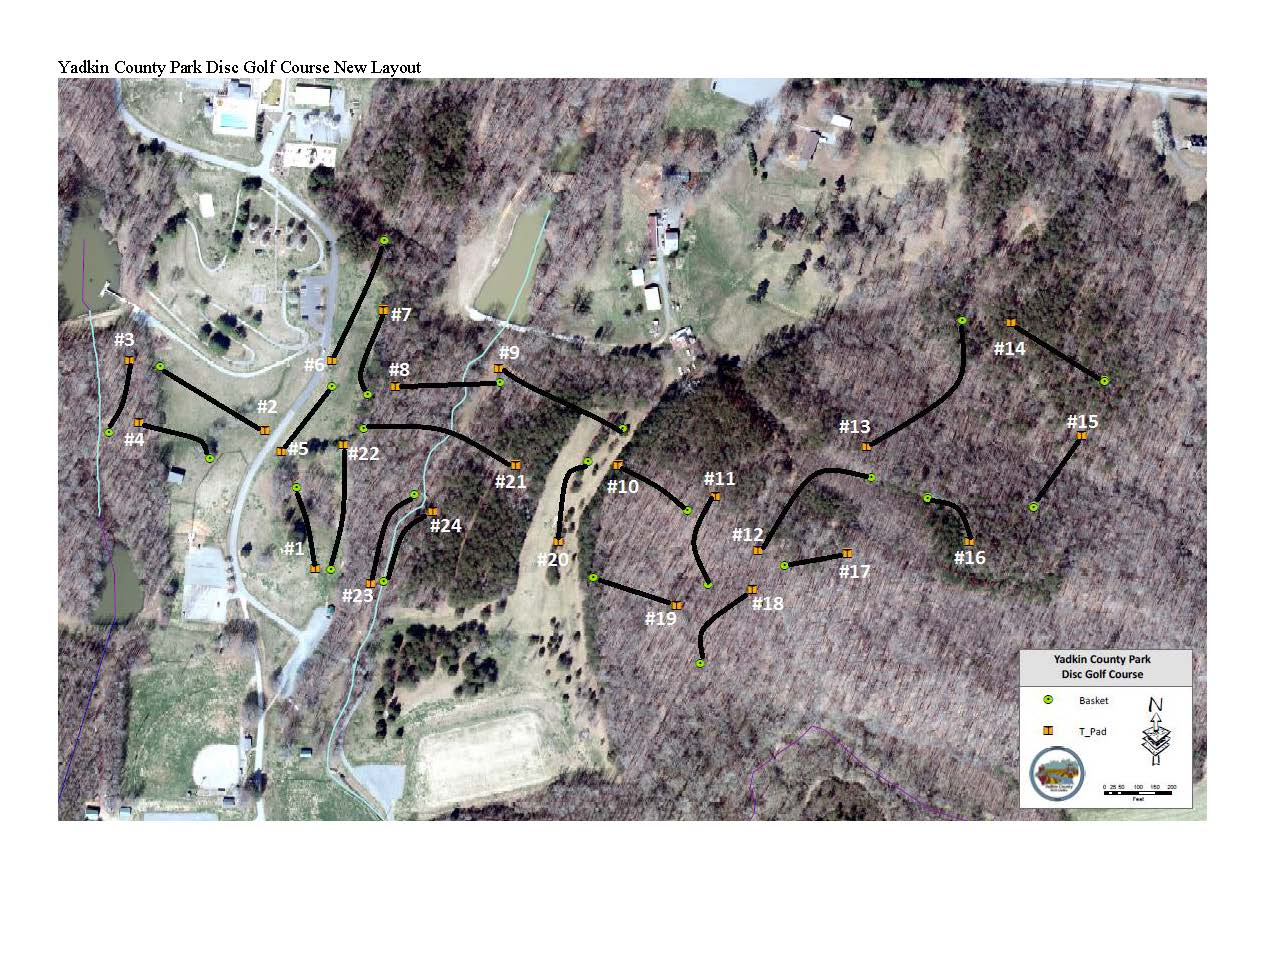 Yadkin County Park Disc Golf Course New Layout